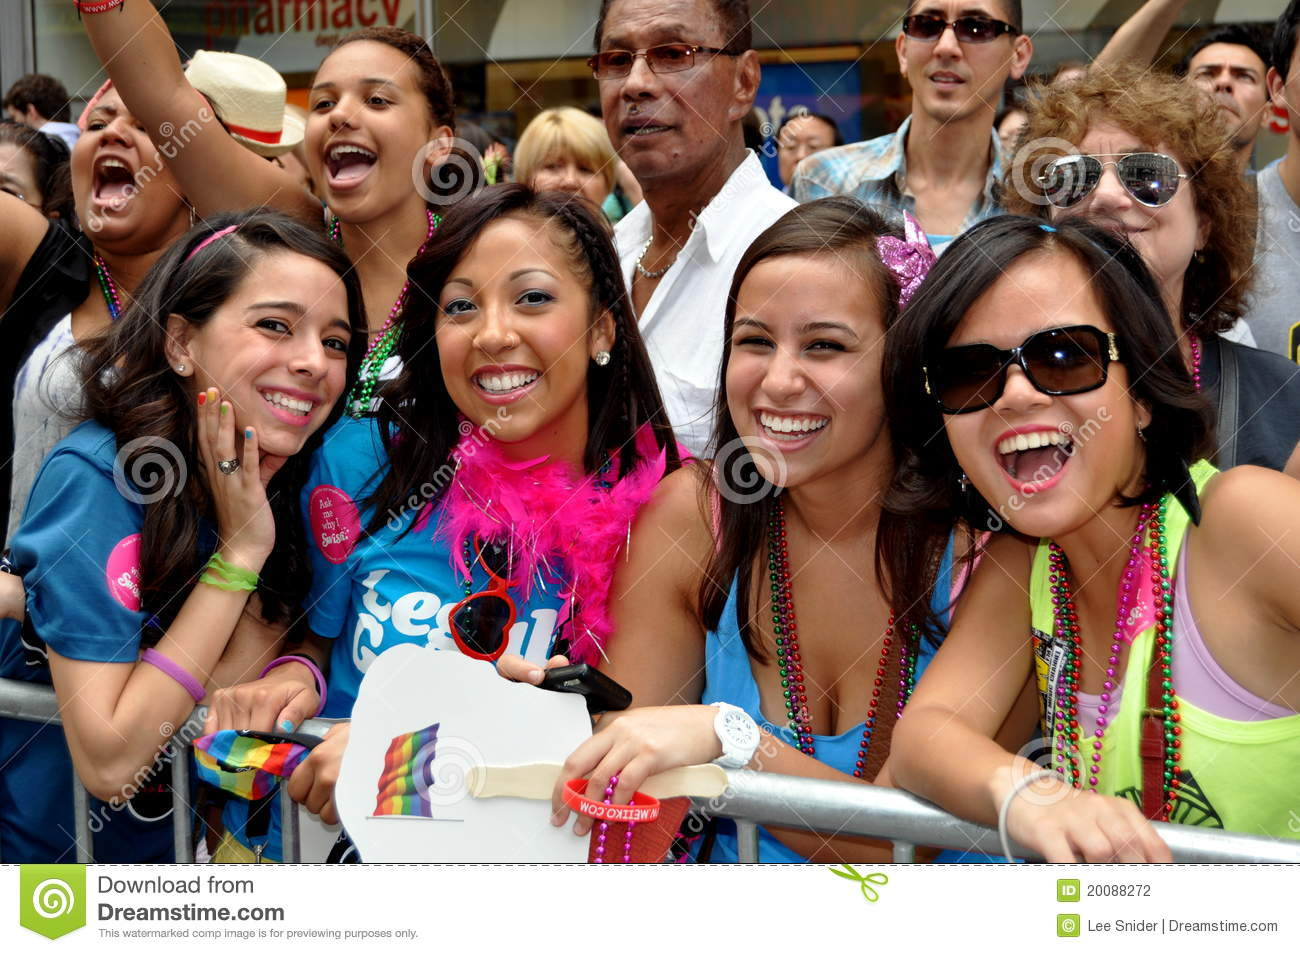 smiling young women having a great time viewing the Gay Pride Parade on Fifth Avenue in